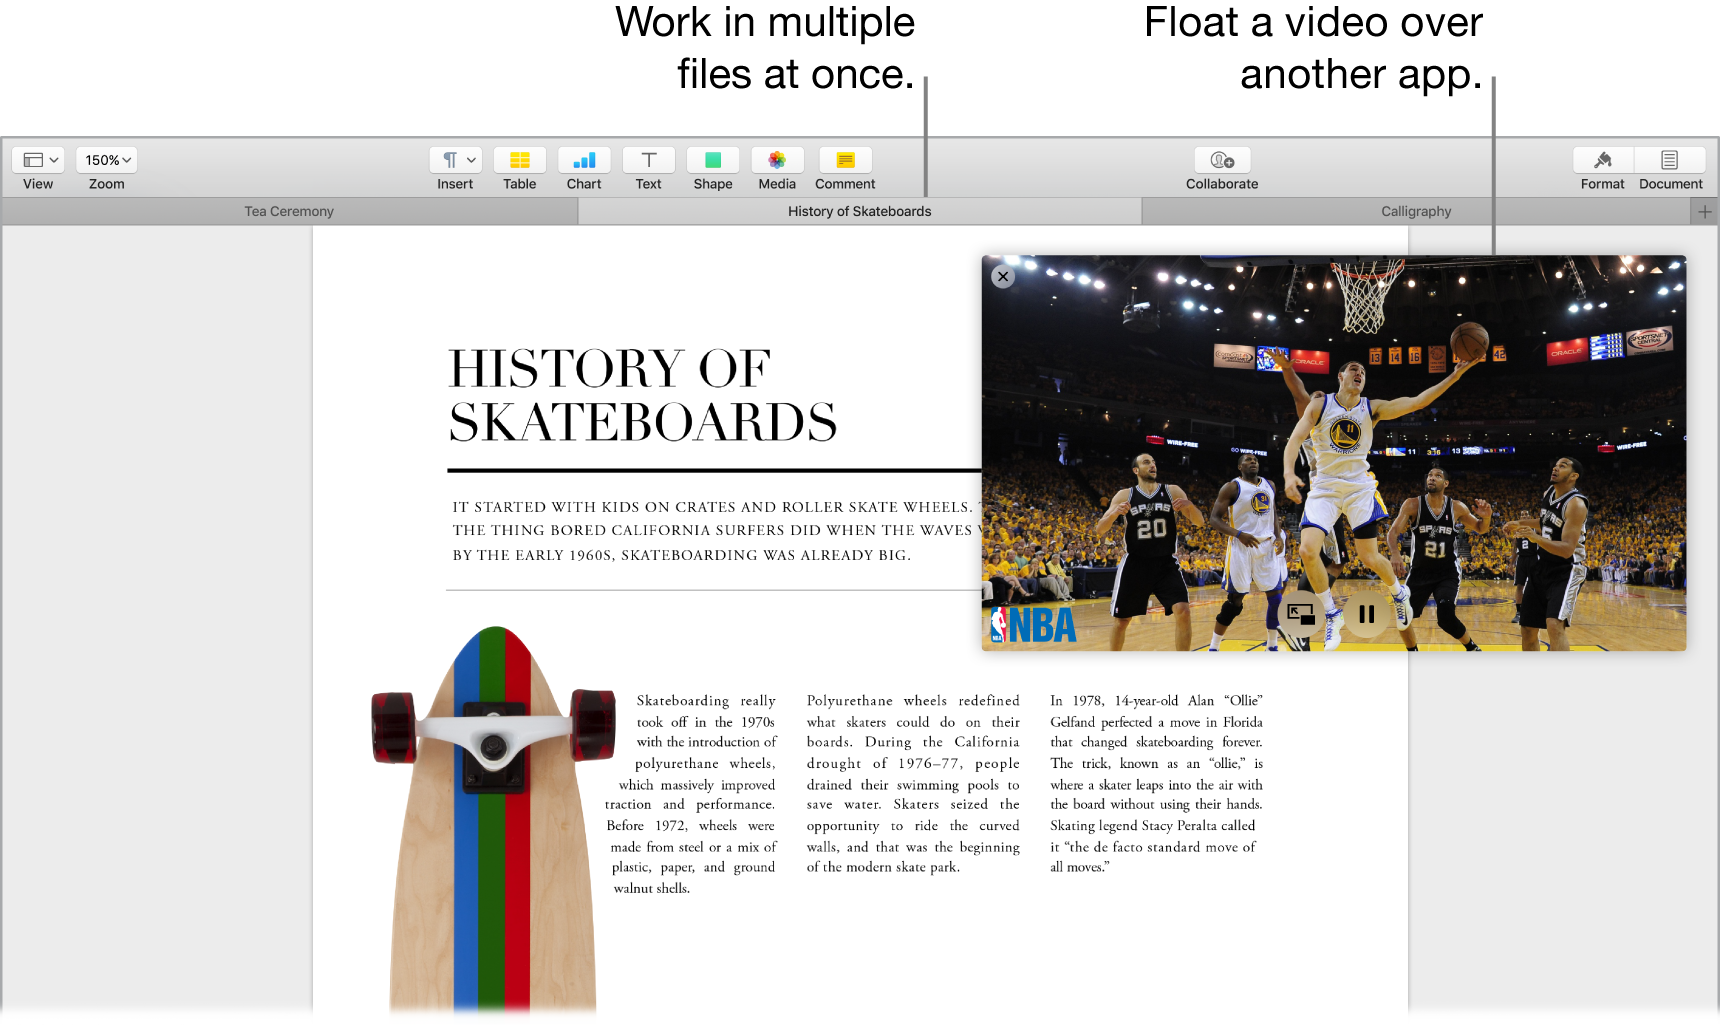 A Pages screen, showing three different Pages documents in separate tabs, demonstrating that you can work in multiple files at the same time. The open tab has a Picture in Picture display of a basketball game over one corner of the screen.